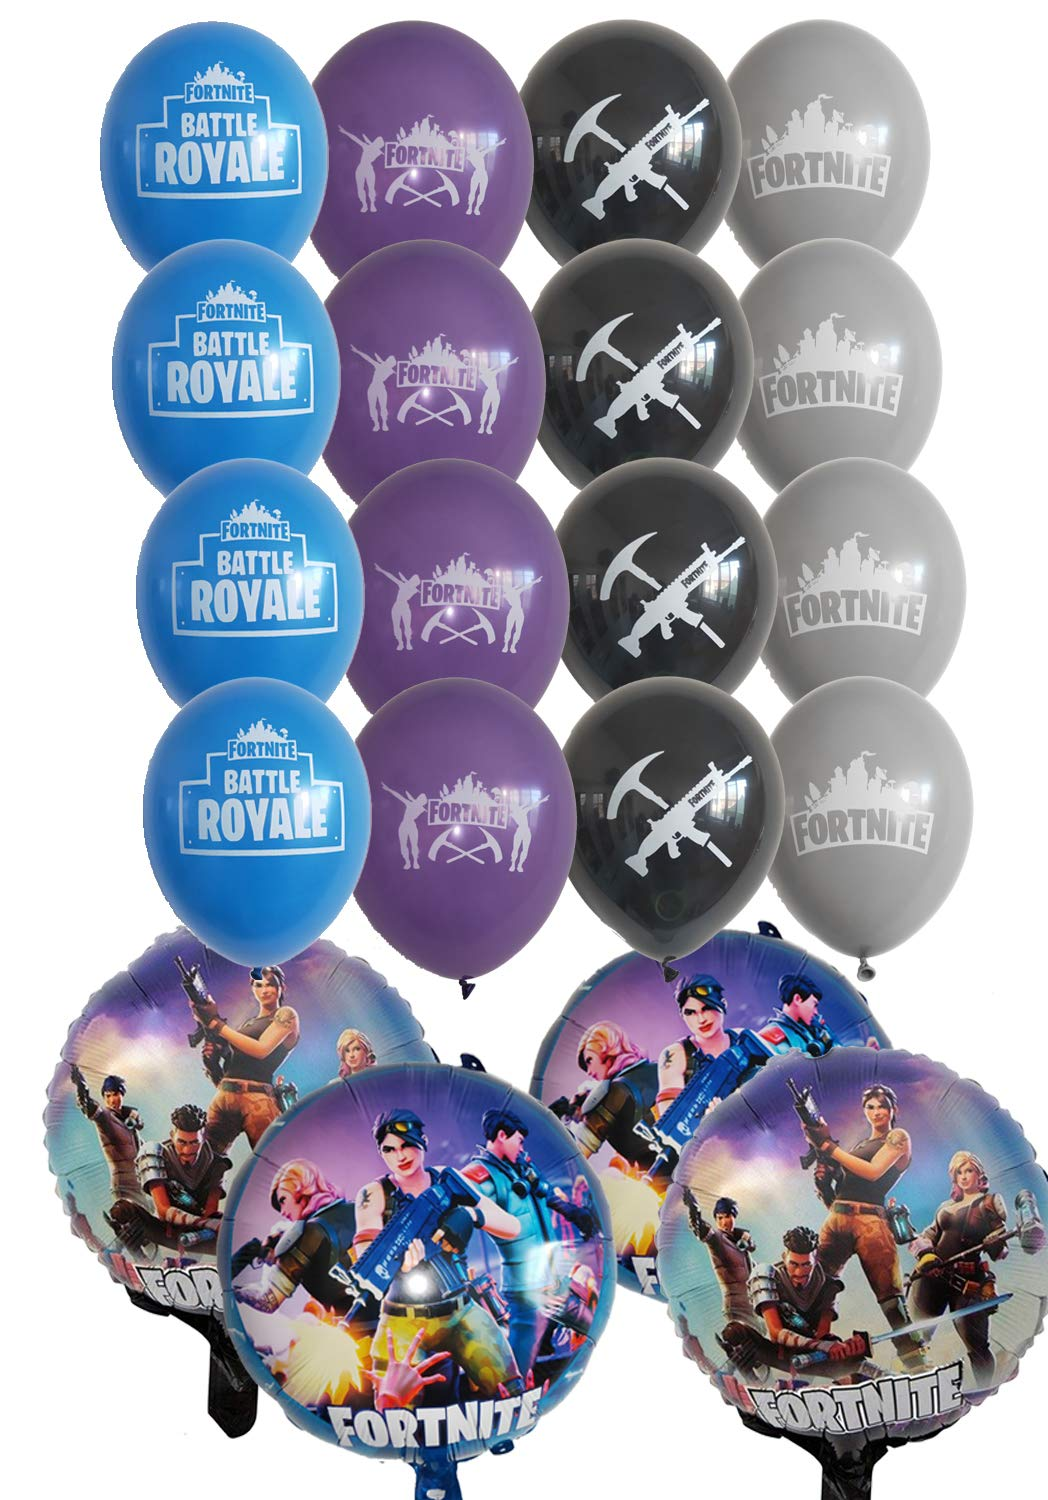 Fort-nite Birthday Balloons 20pcs - 16 Latex and 4 Foil fort nite Balloons Fort nite Party Supplies and video Game party supplies